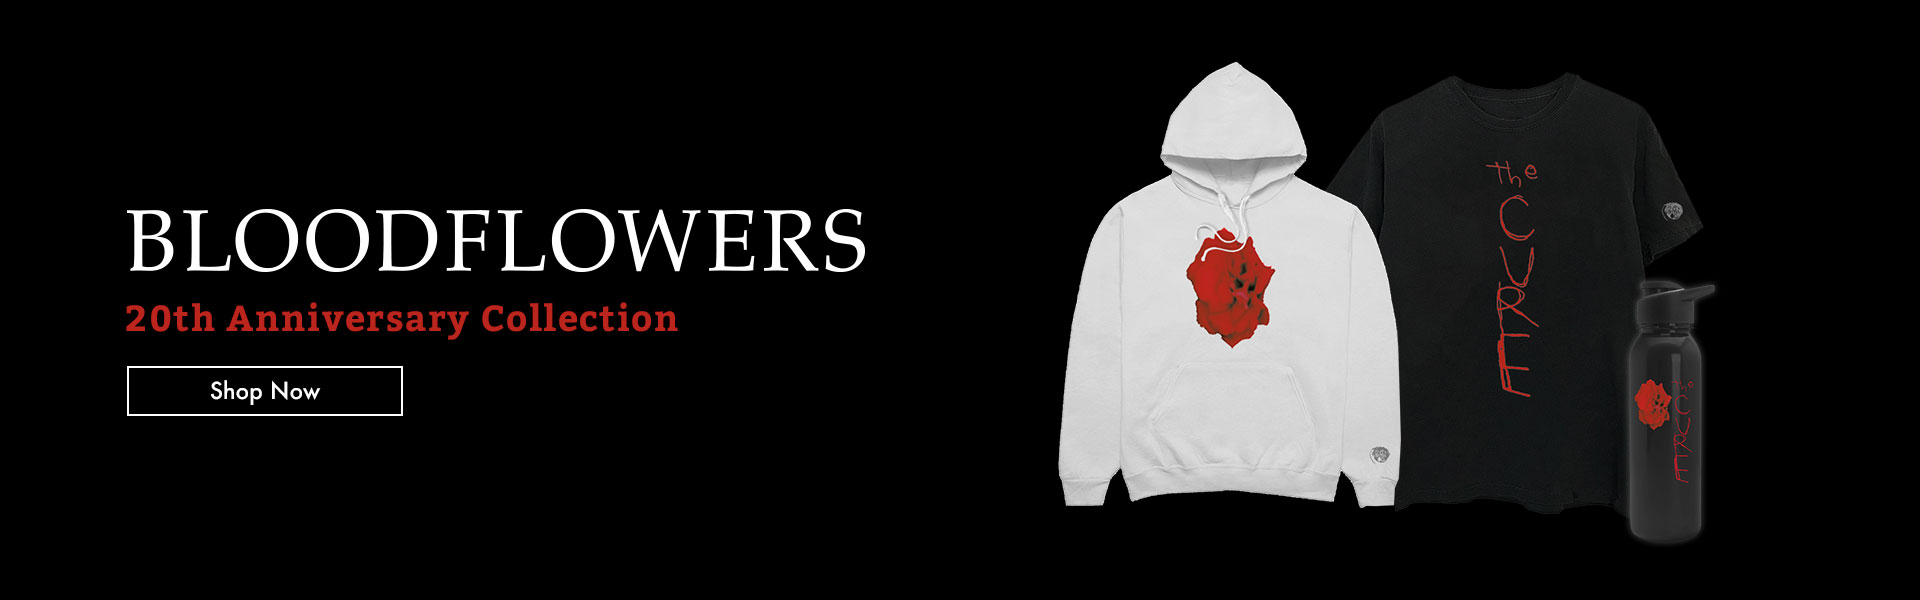 Bloodflowers | 20th anniversary collection | Shop now